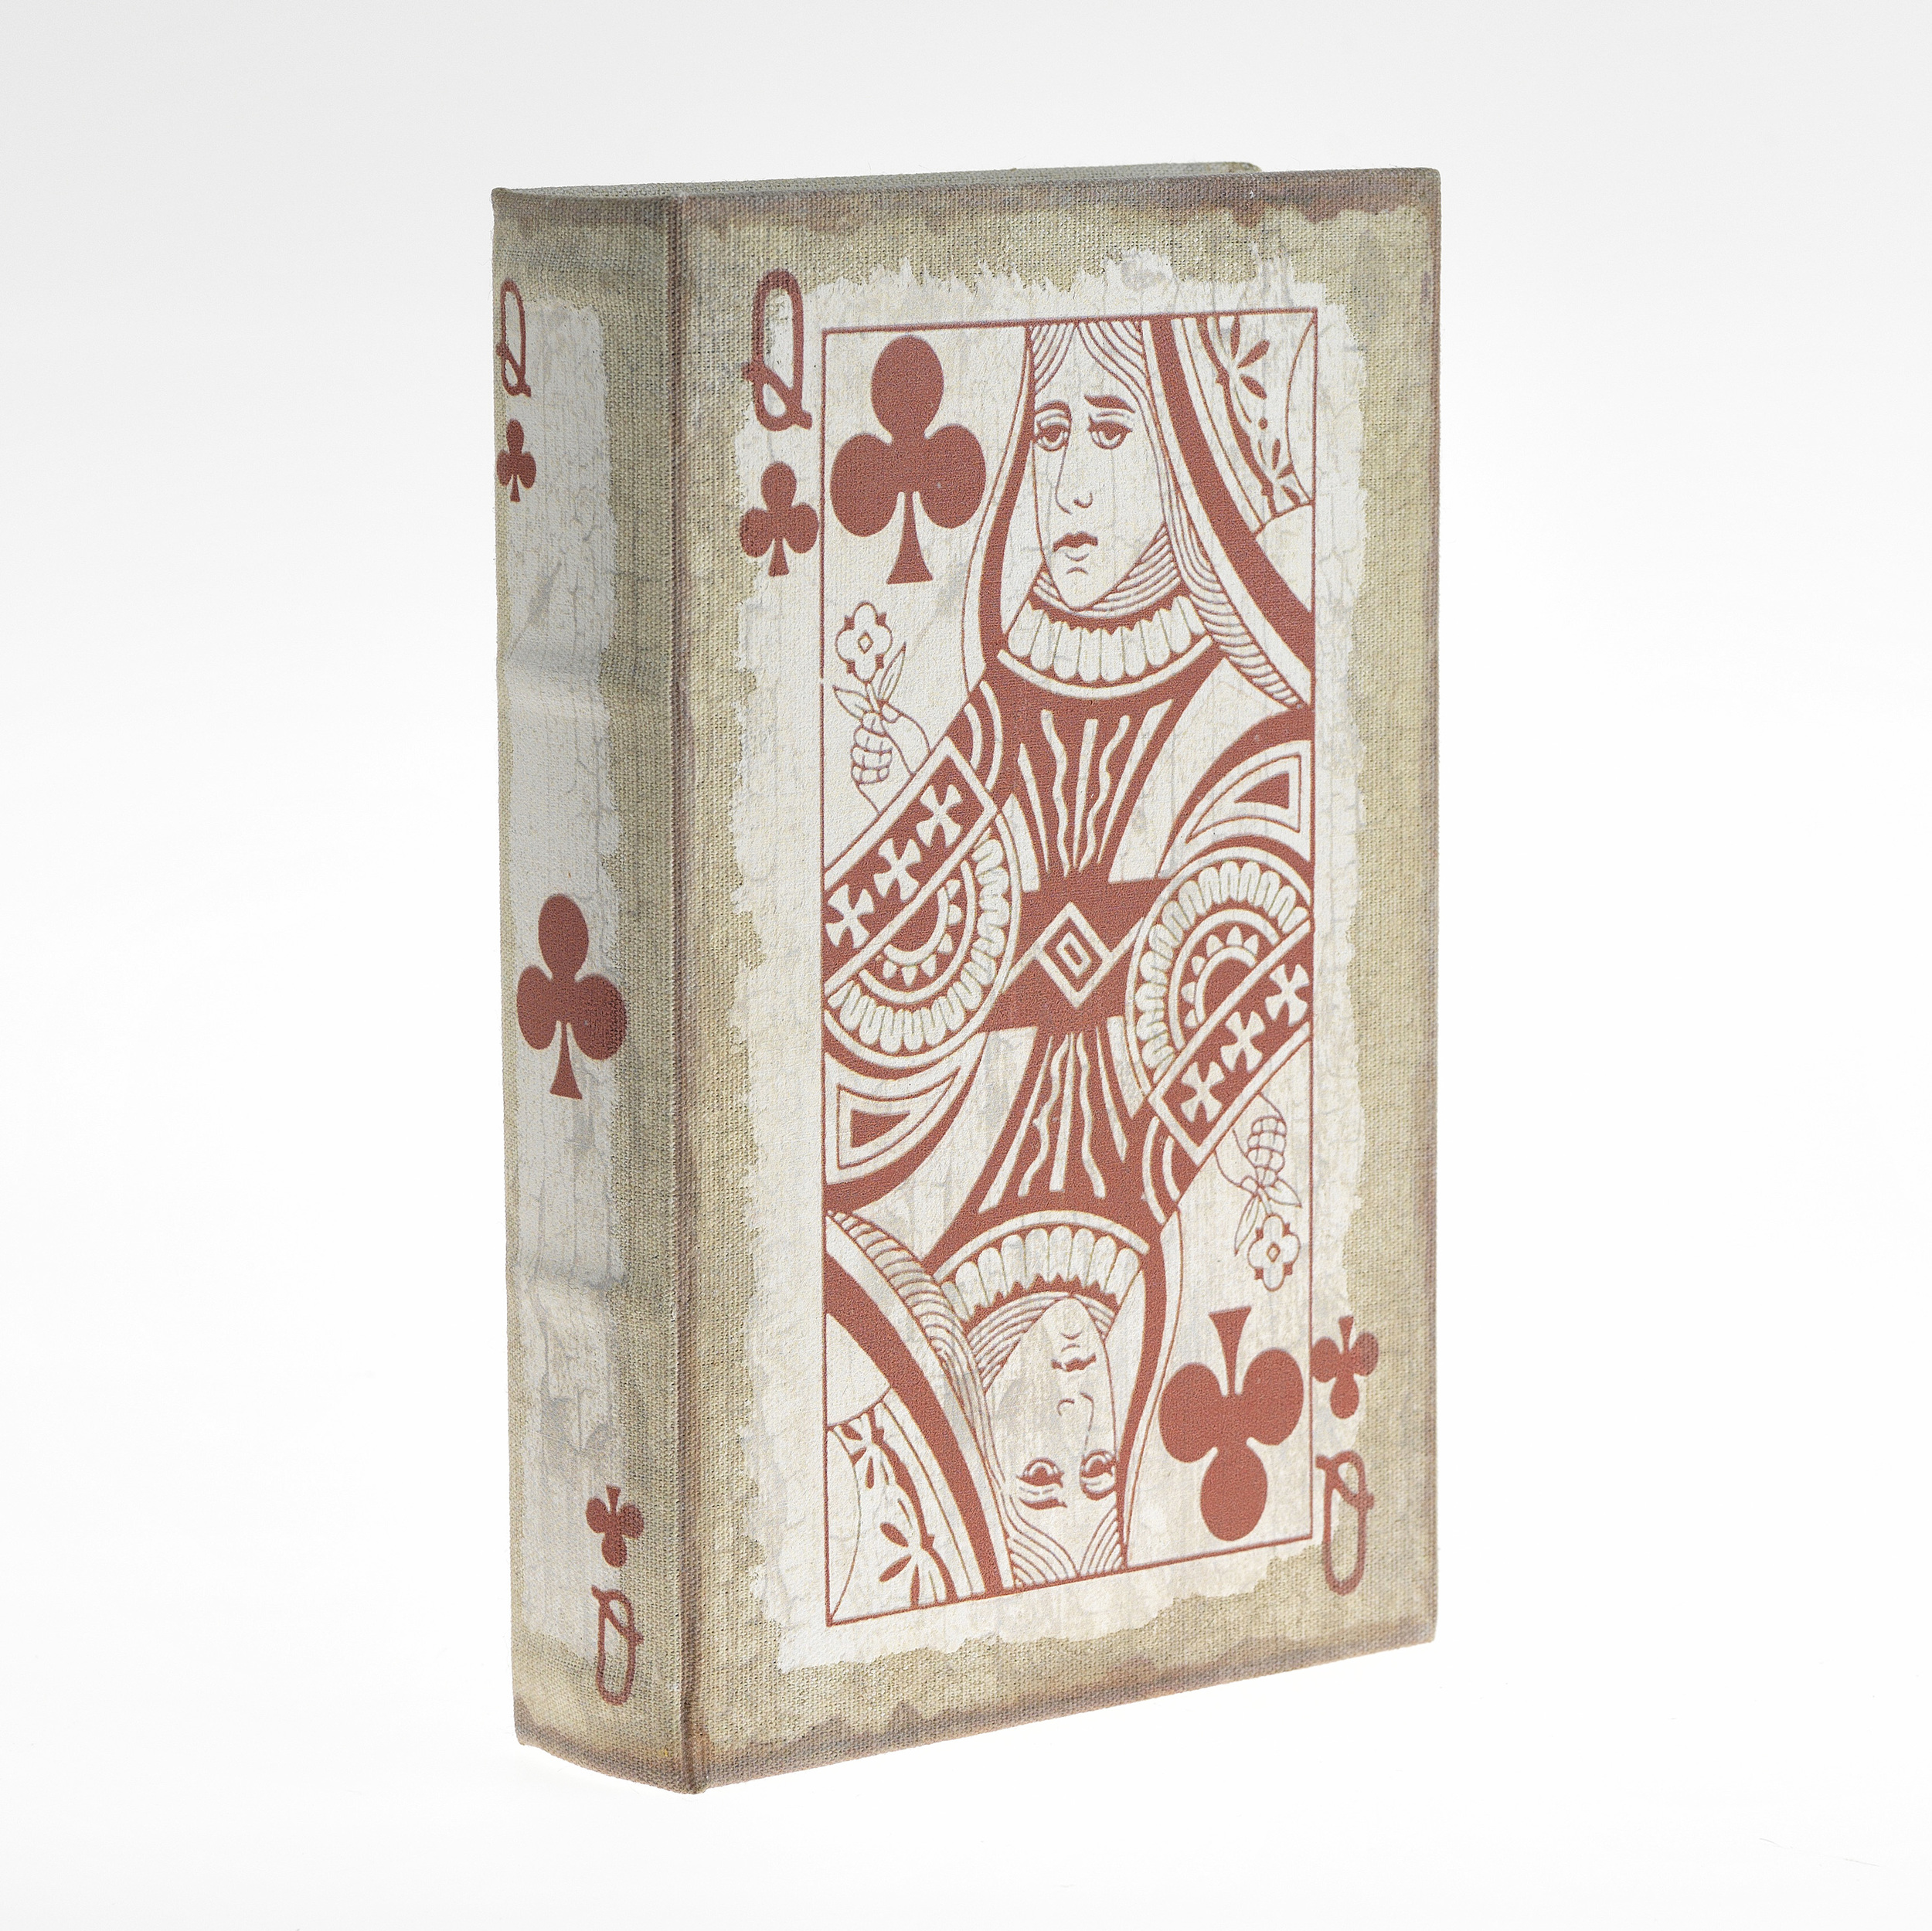 €20 WOODEN/CAMVAS BOOK BOX 'PLAYING CARD' 26X17X5